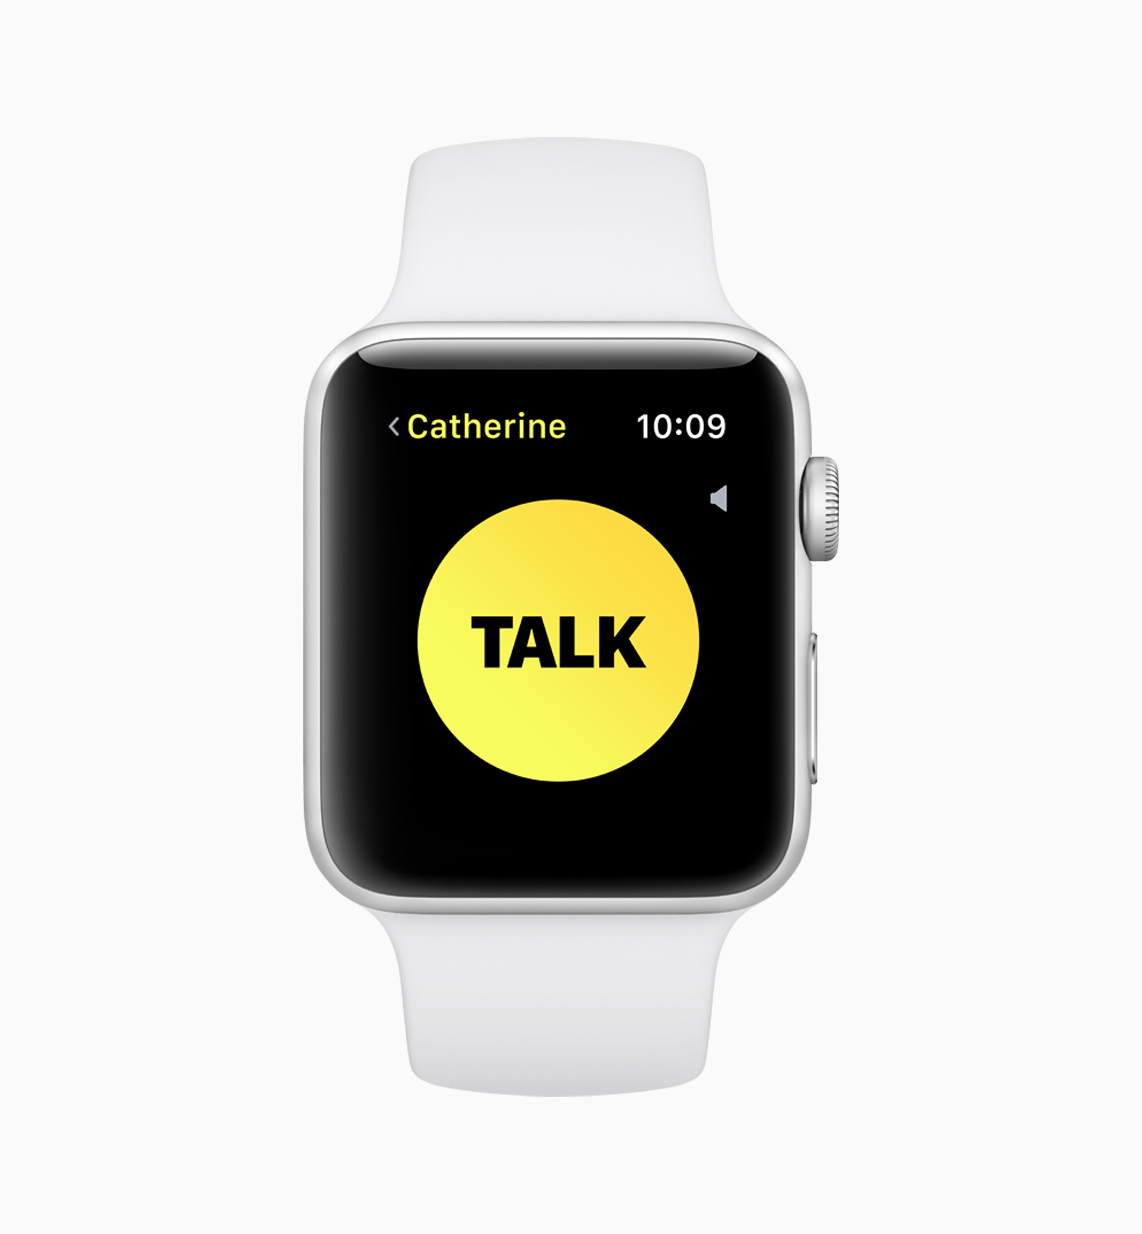 Apple-watchOS_5-Walkie-Talkie-screen-06042018.jpg